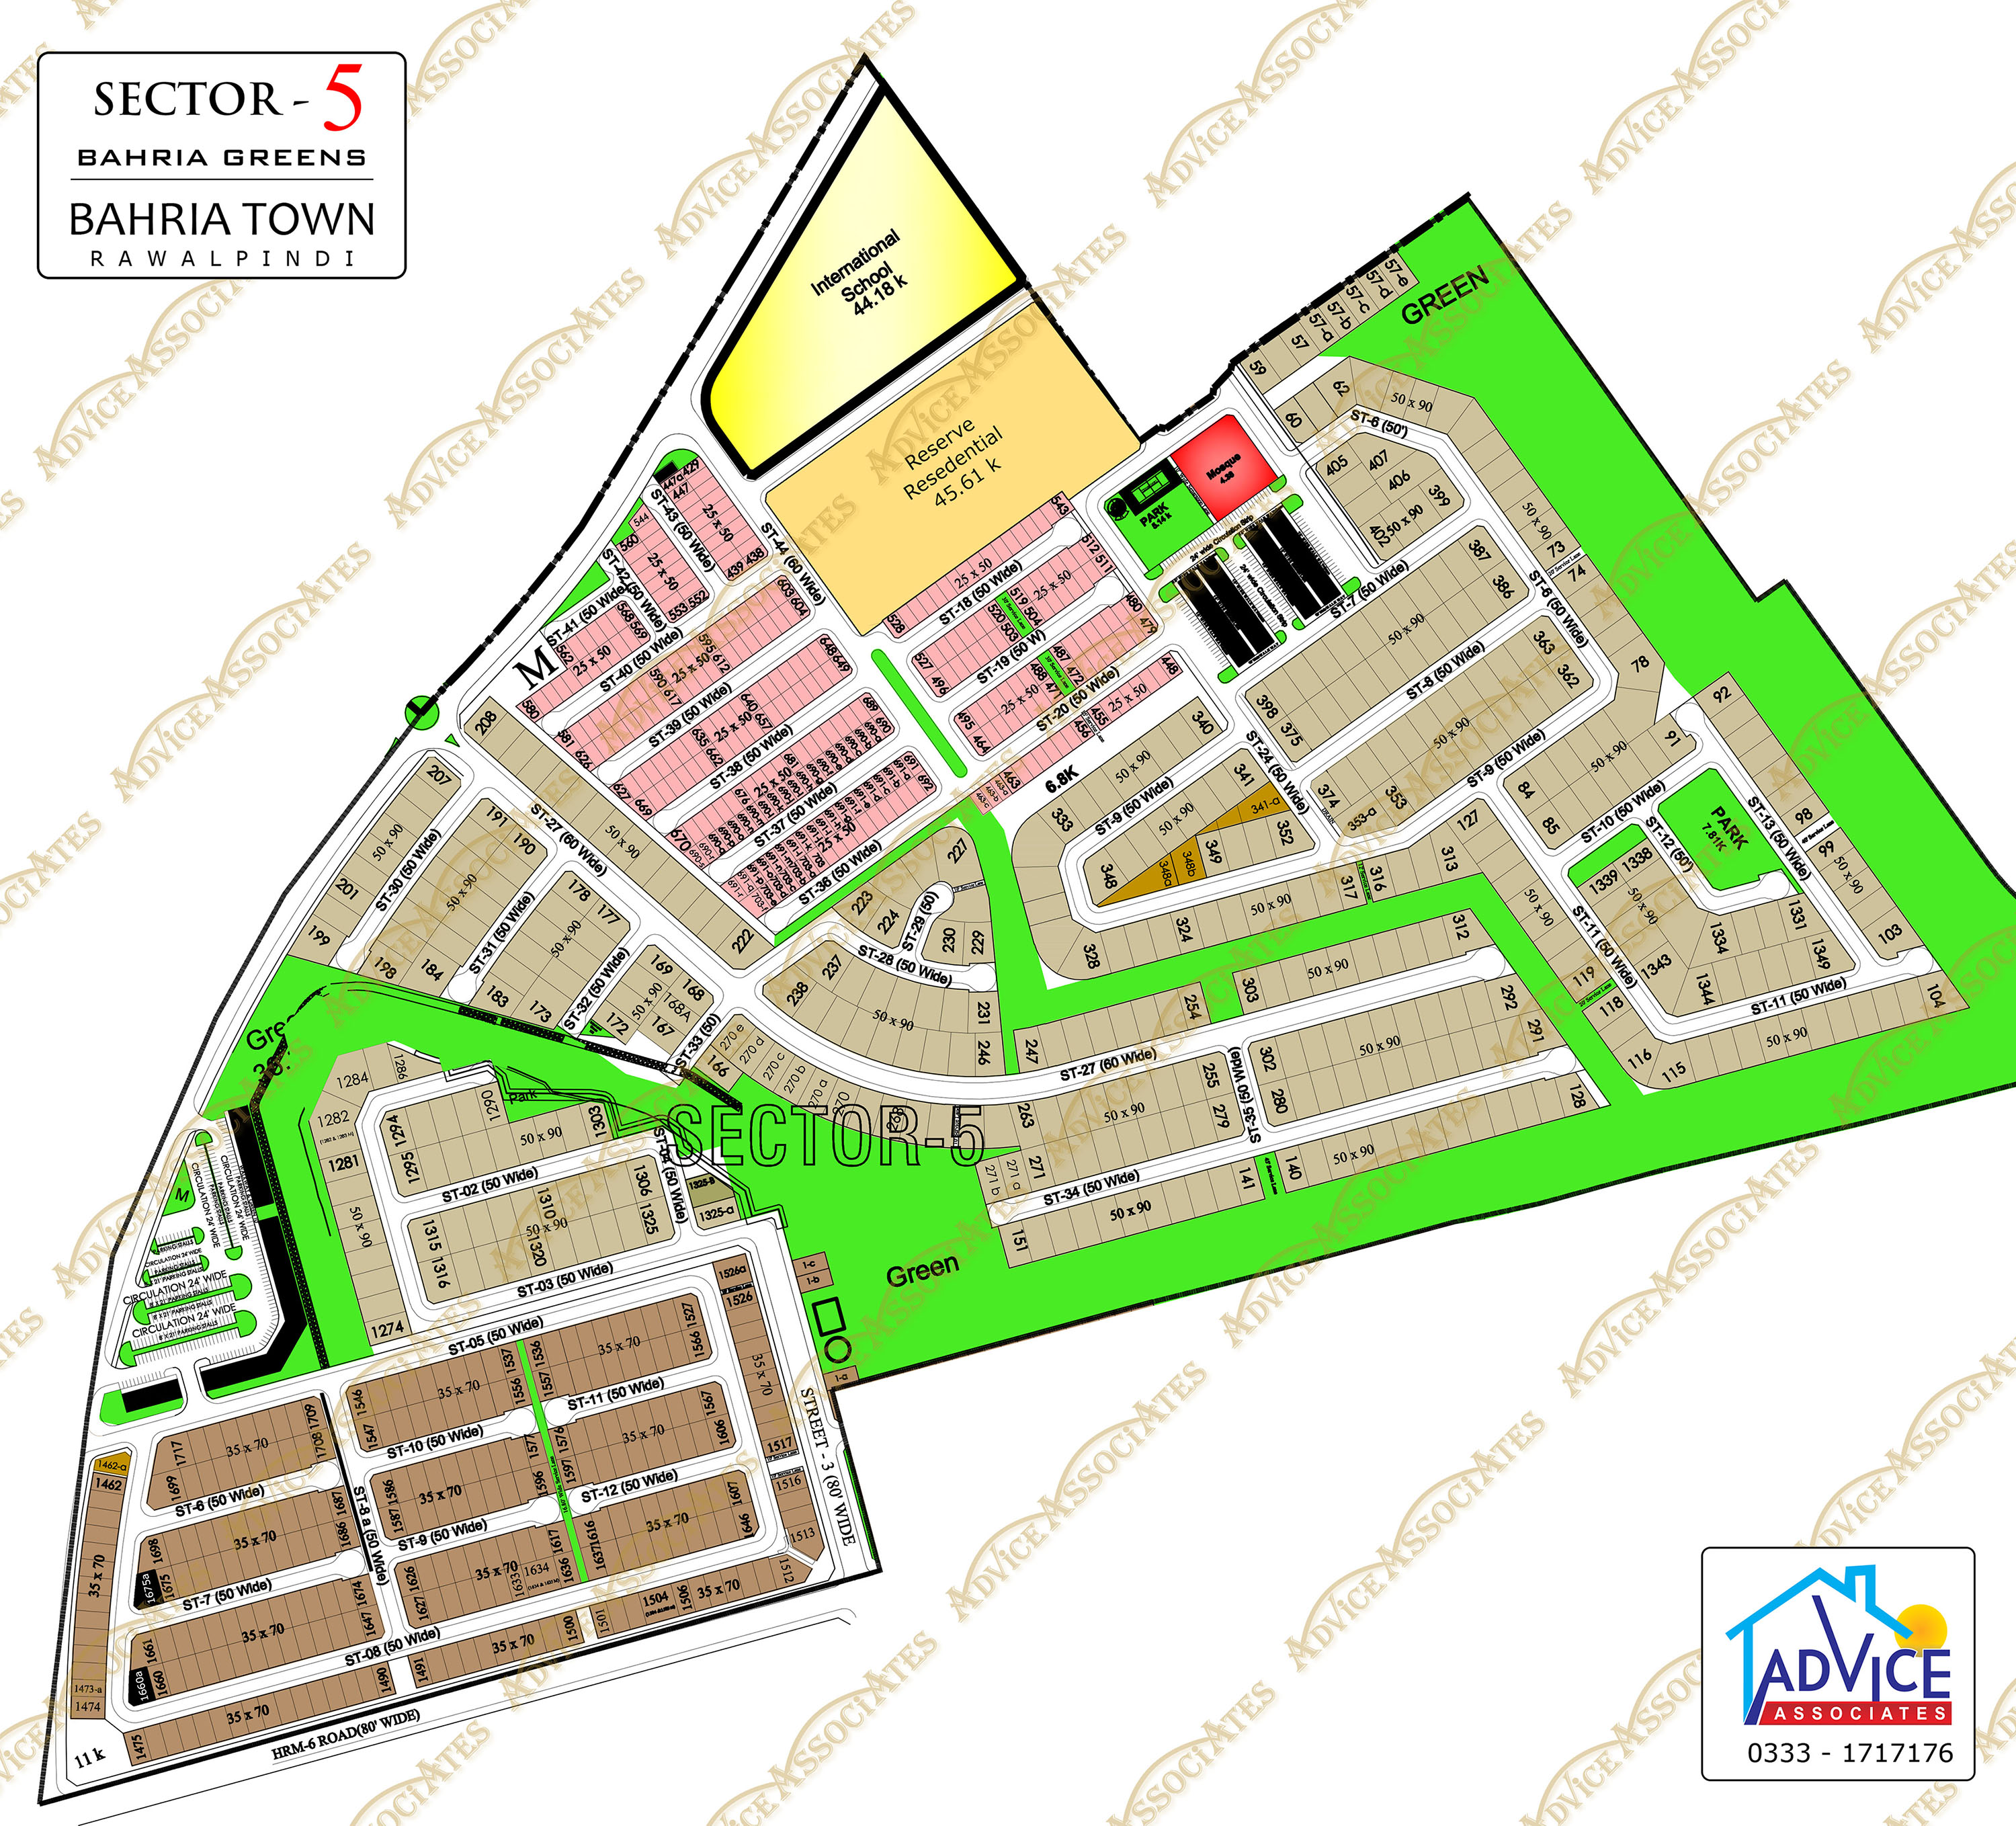 Bahria Greens Sector 5